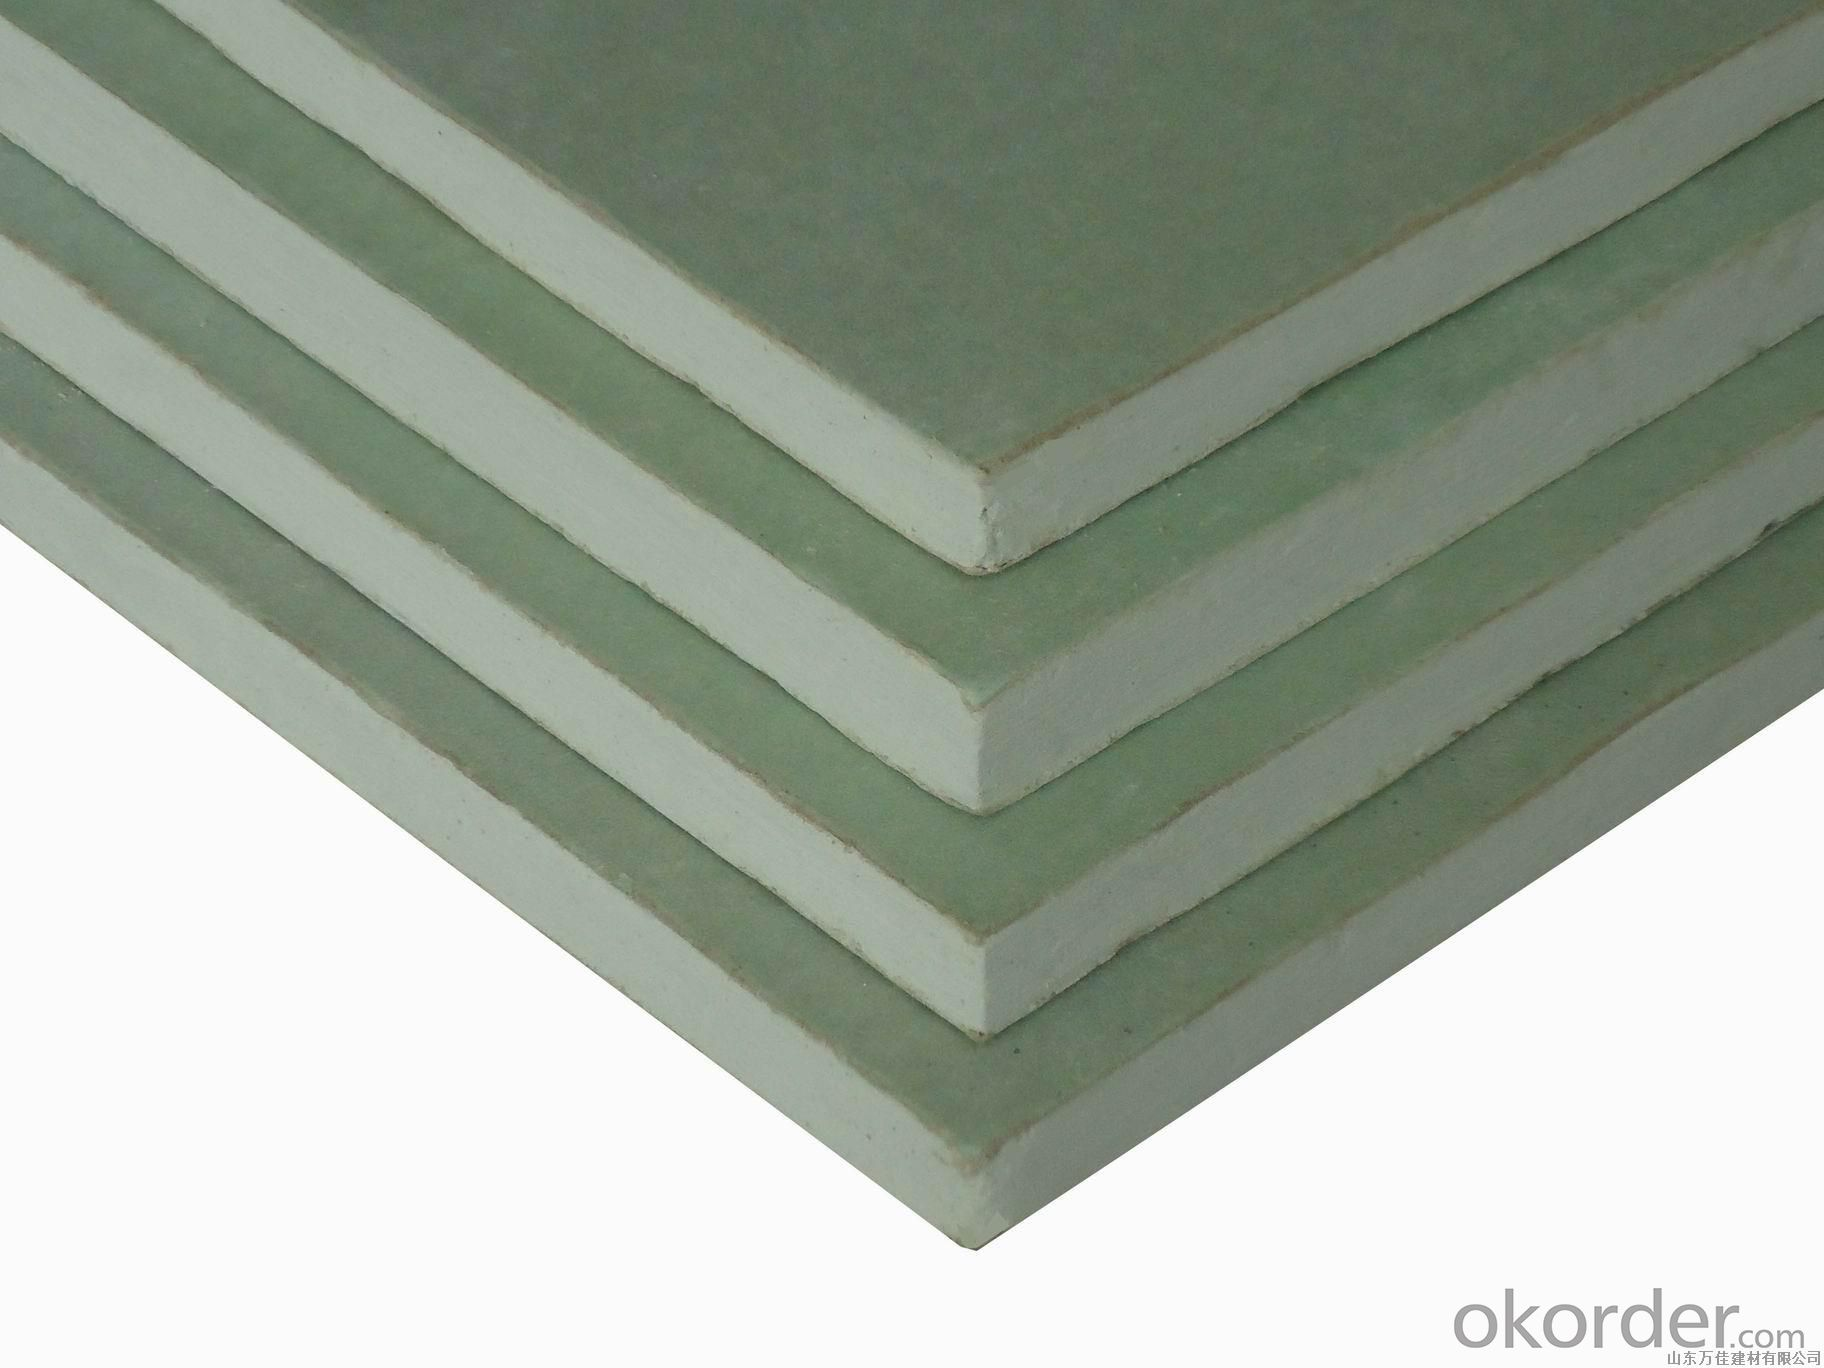 Low Partition Gypsum : Buy gypsum board good quality low price acoustic